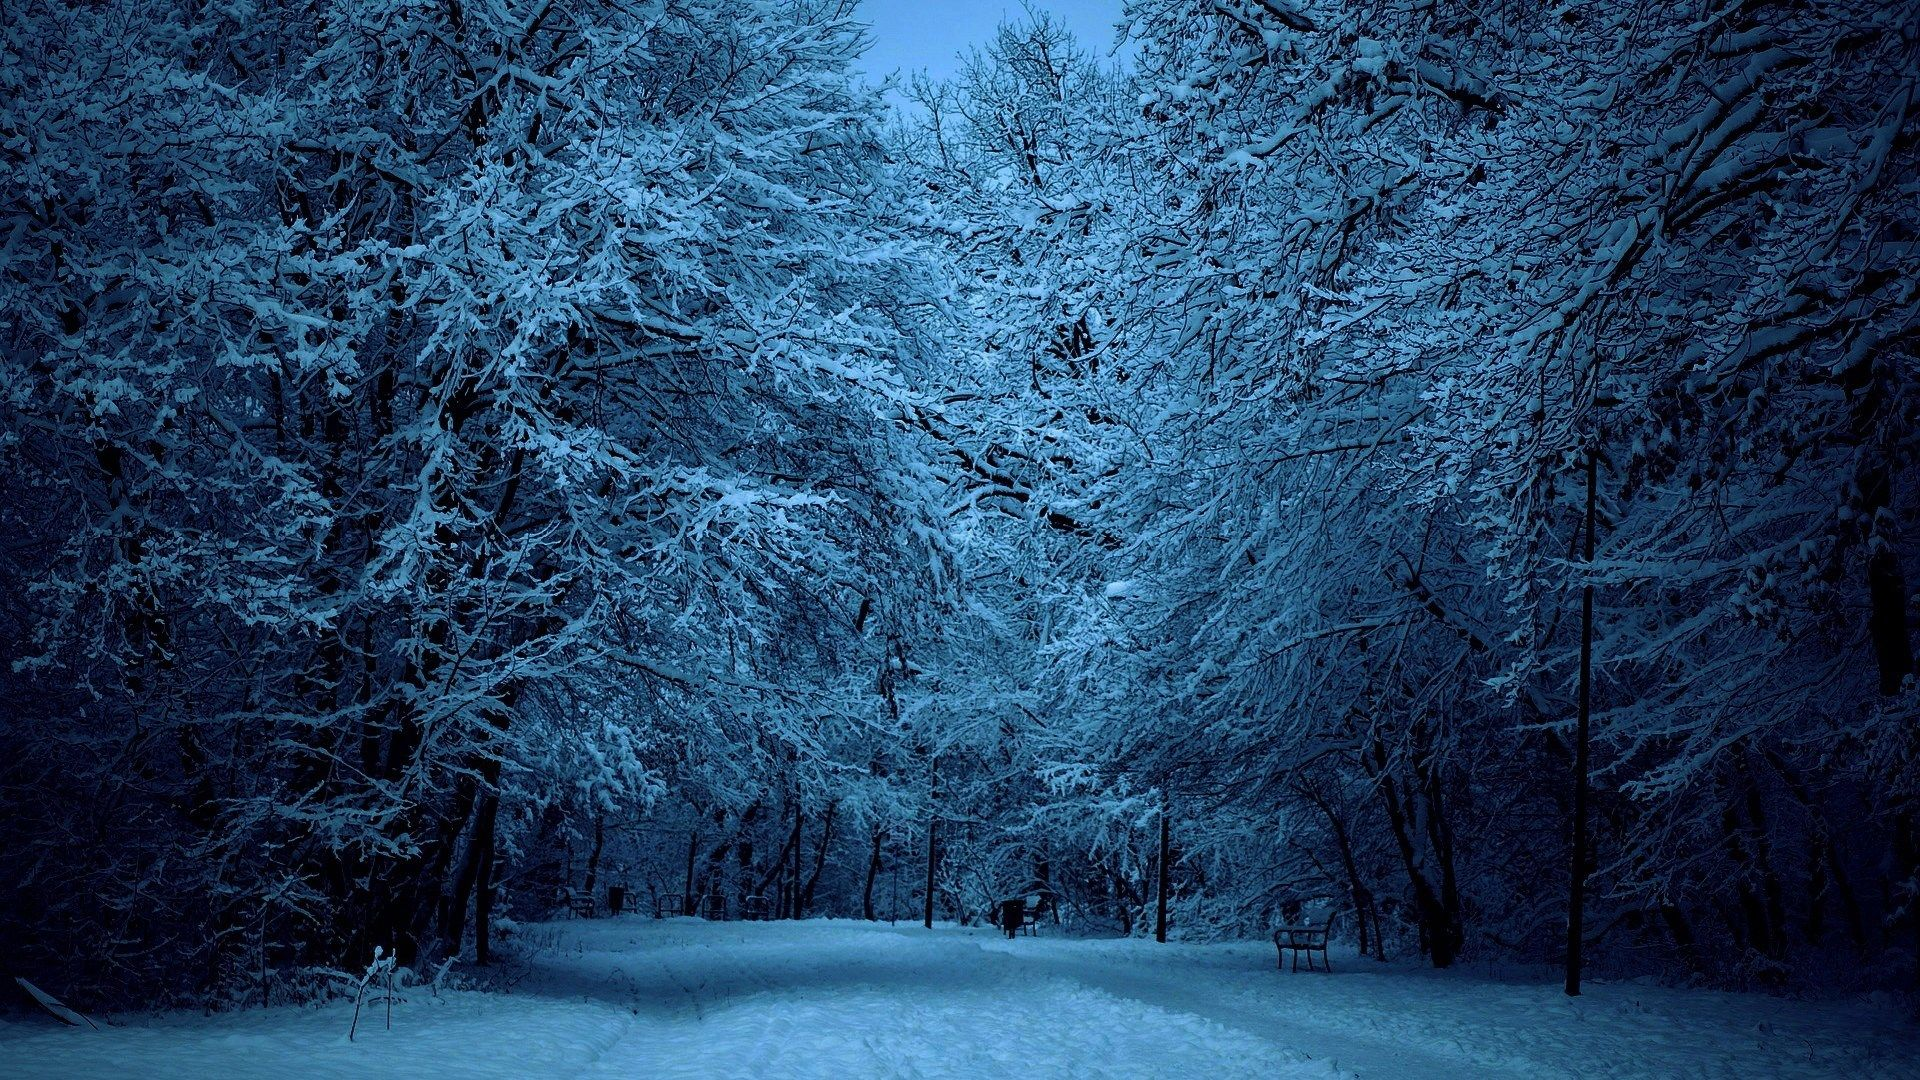 Winter Pictures Free For Desktop 1920x1080 Winter Forest Winter Pictures Winter Trees Hd wallpaper snow winter forest trees